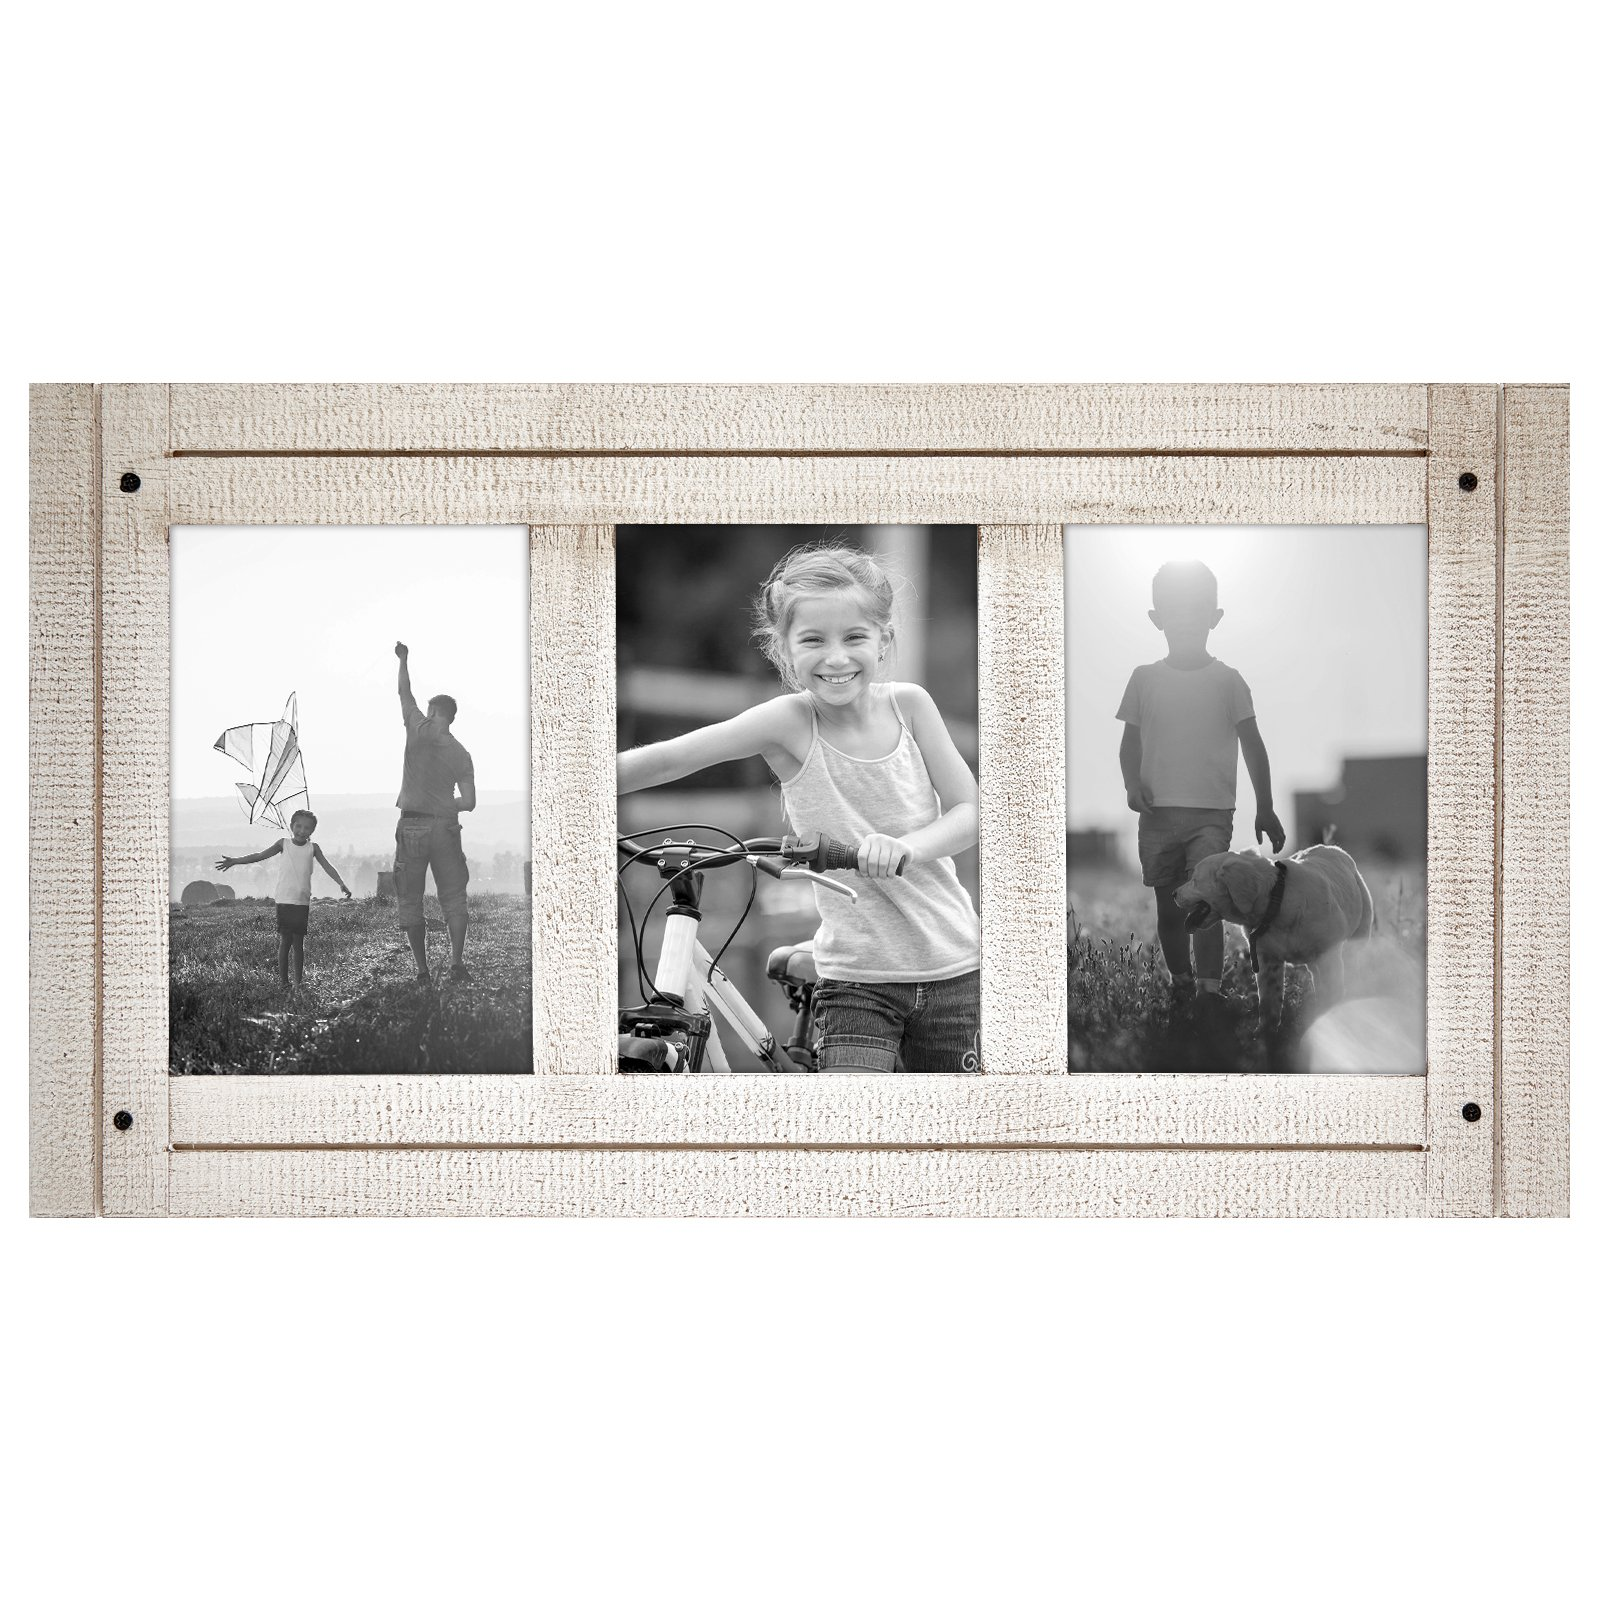 Americanflat 4x6 Aspen White Collage Distressed Wood Frame - Made to Display 3 4x6 Photos - White - Ready to Hang on Wall or Stand on Tabletop by Americanflat